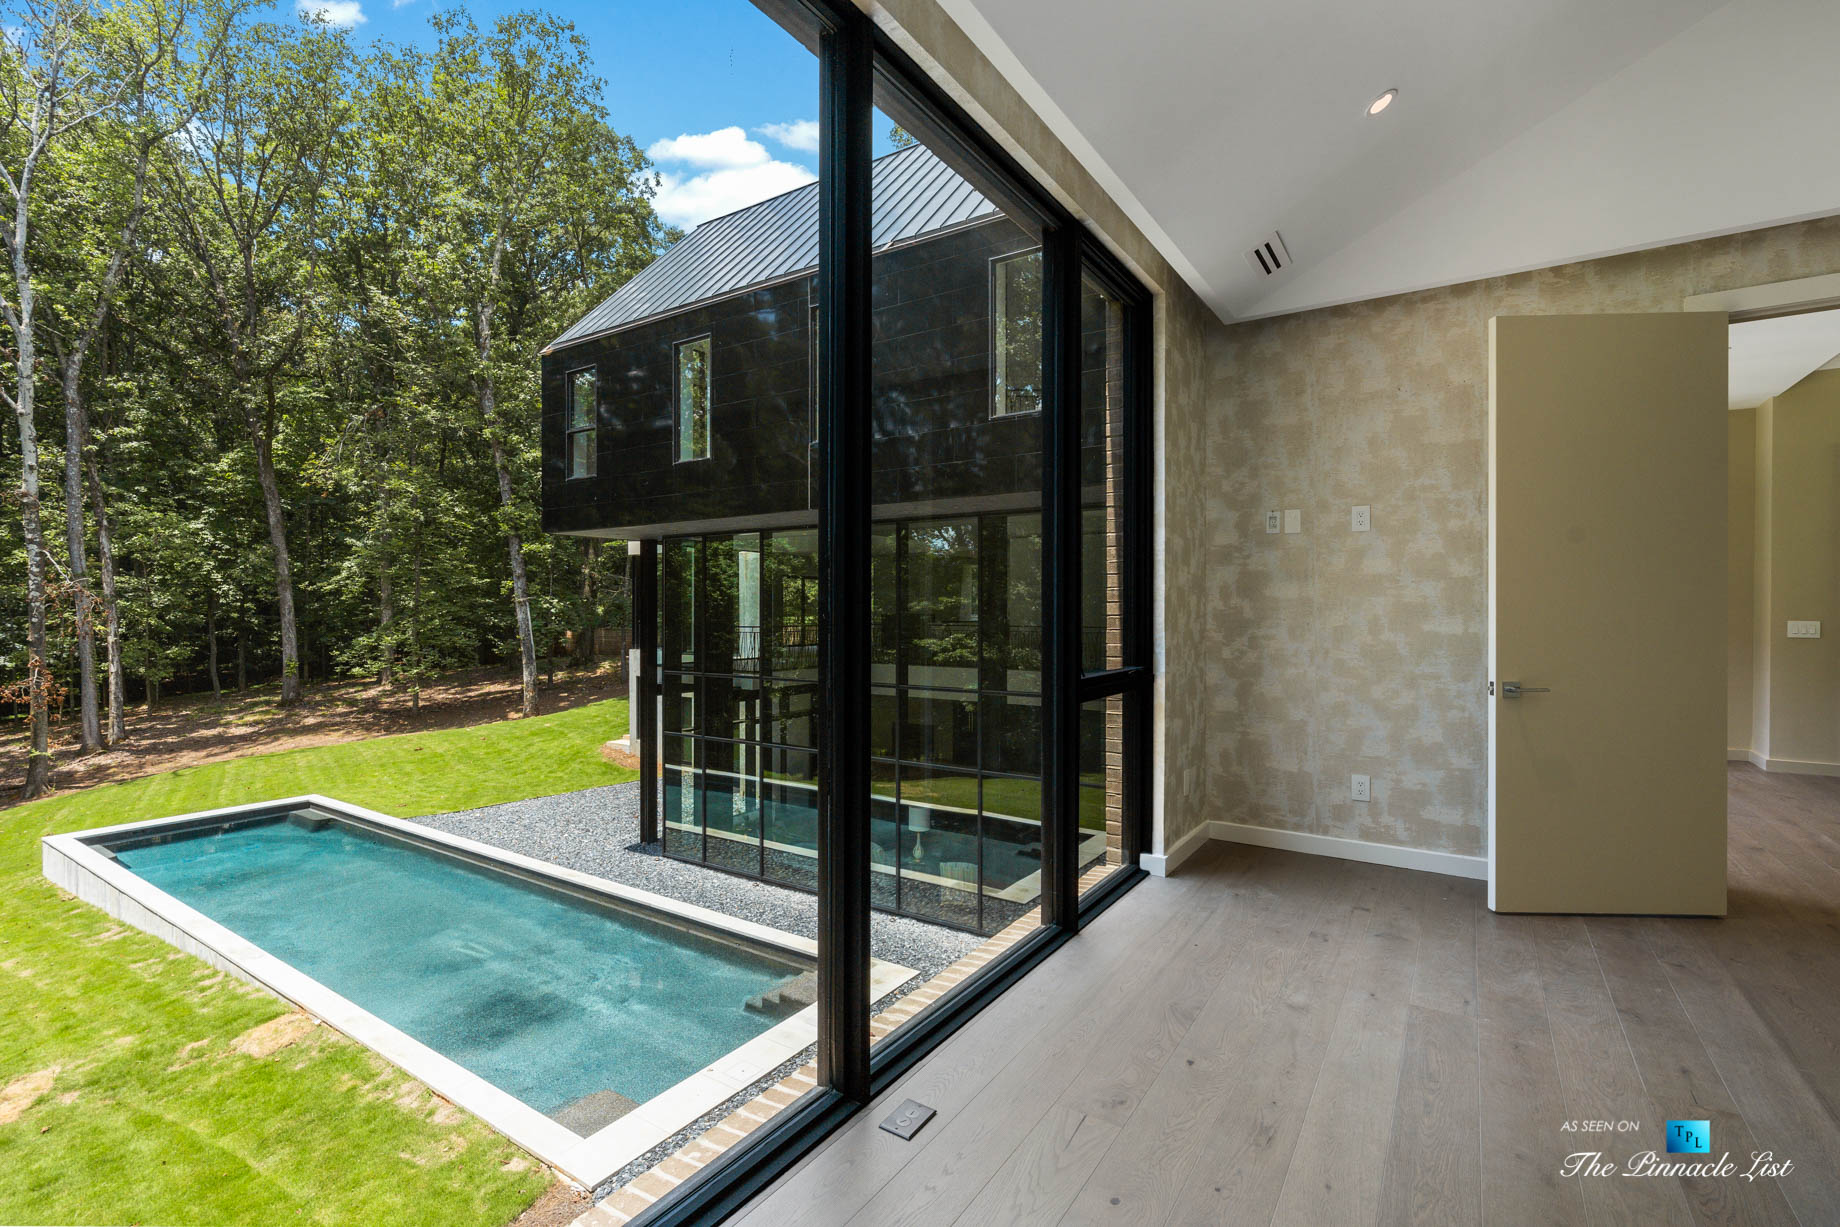 2716 Ridgewood Rd NW, Atlanta, GA, USA – Master Bedroom Pool View – Luxury Real Estate – Modern Contemporary Buckhead Home